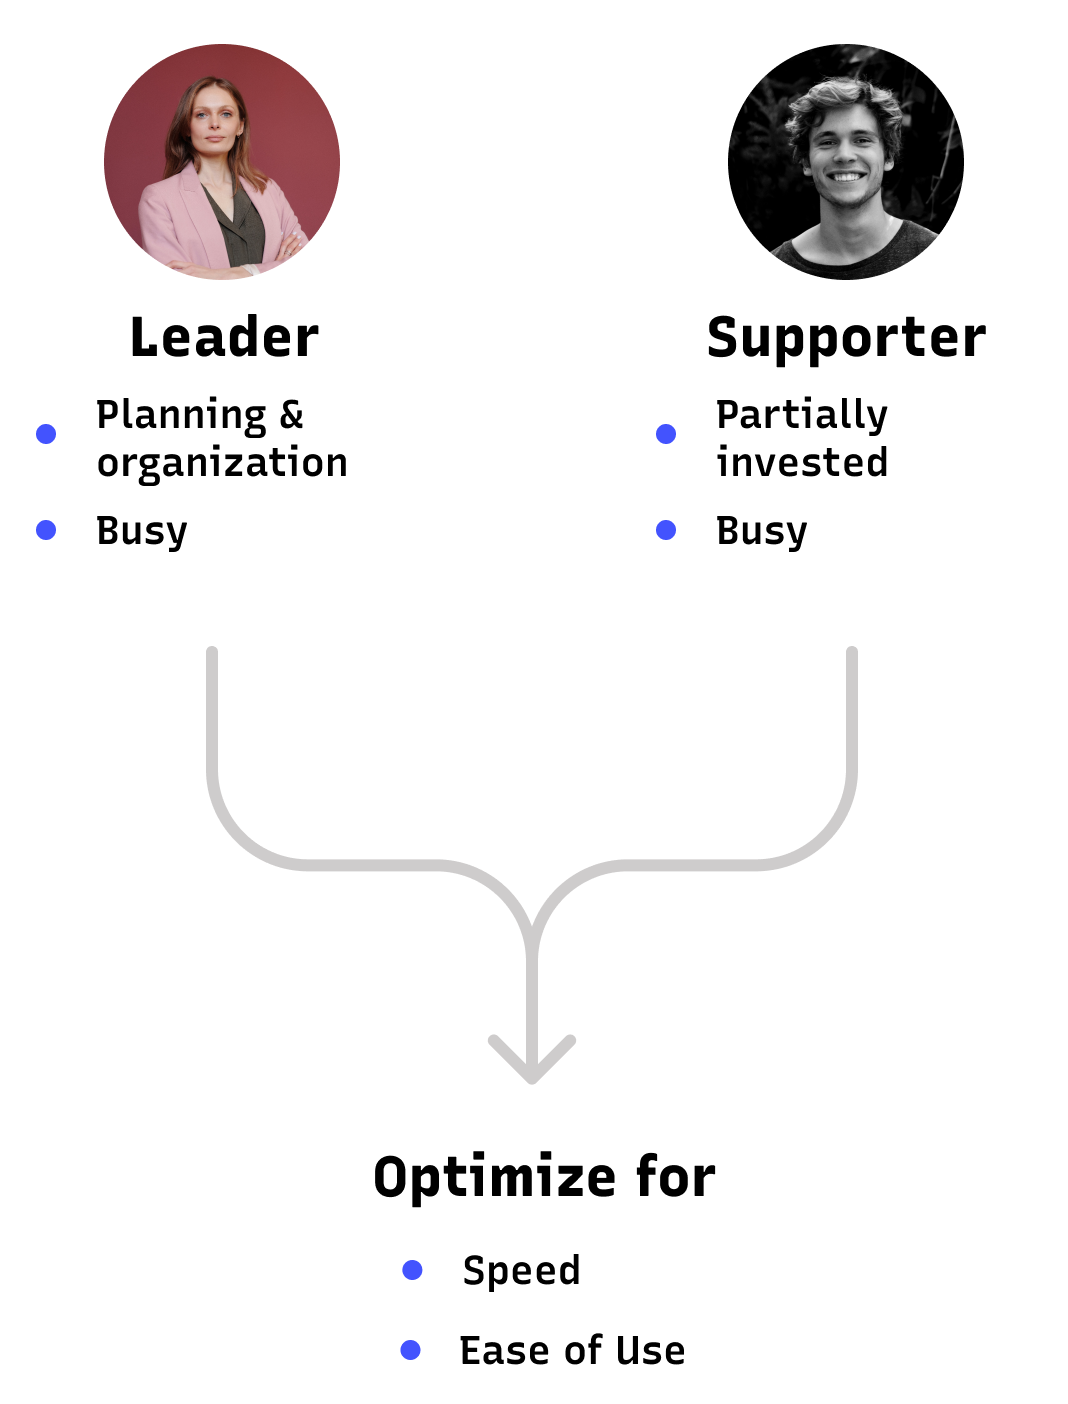 Personas of leader and supporter roles which lead to optimizing an app for speed and ease of use